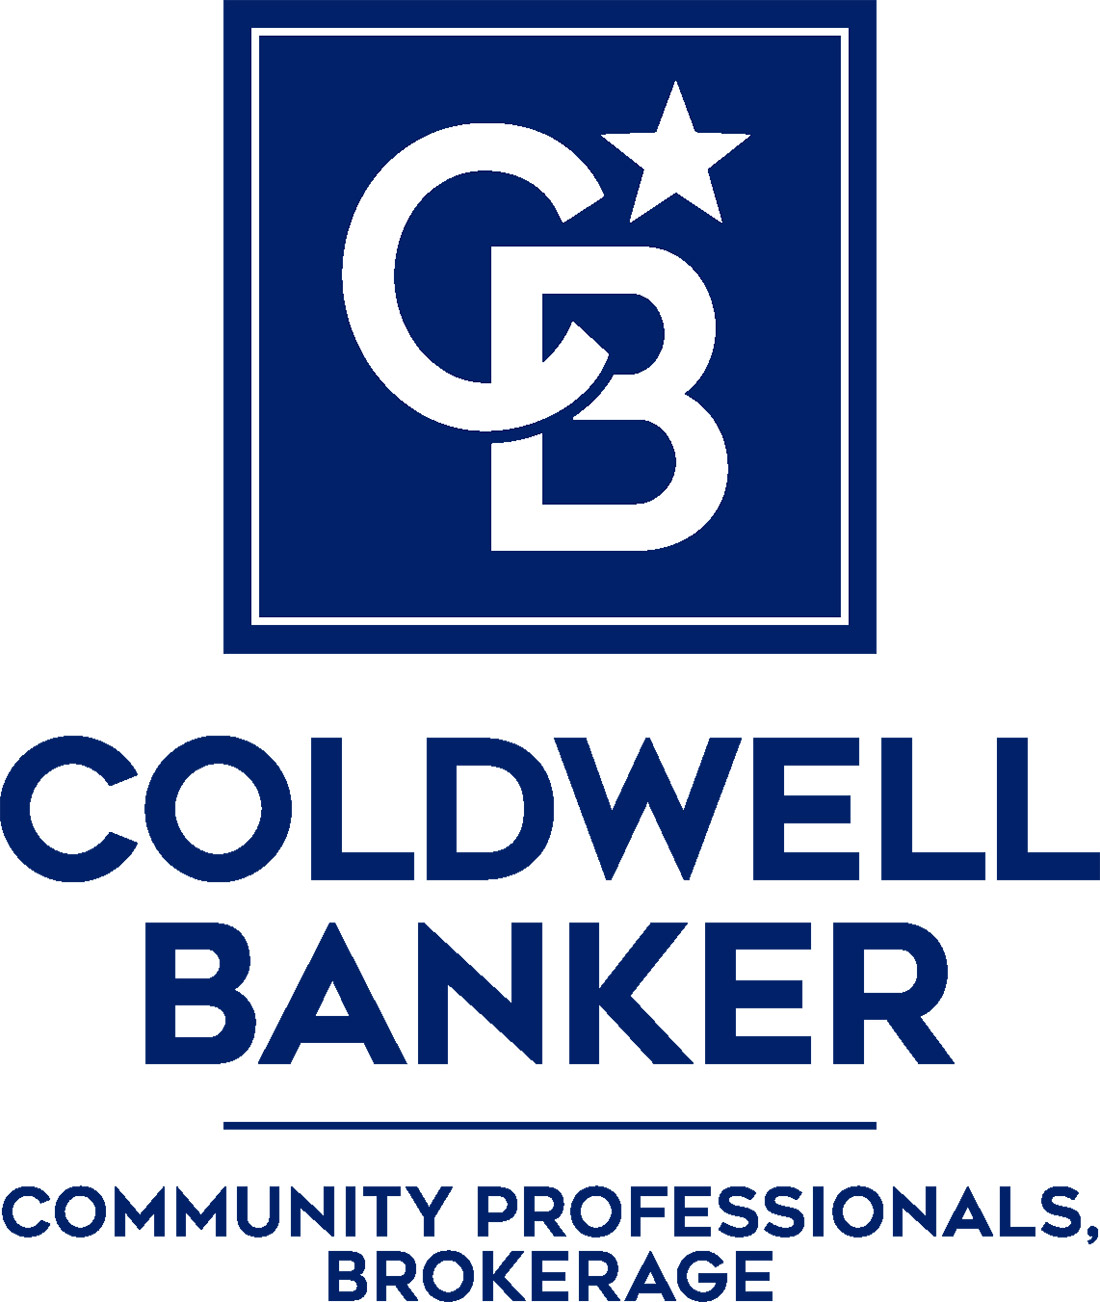 Joan Morgan - Coldwell Banker Community Professionals Logo